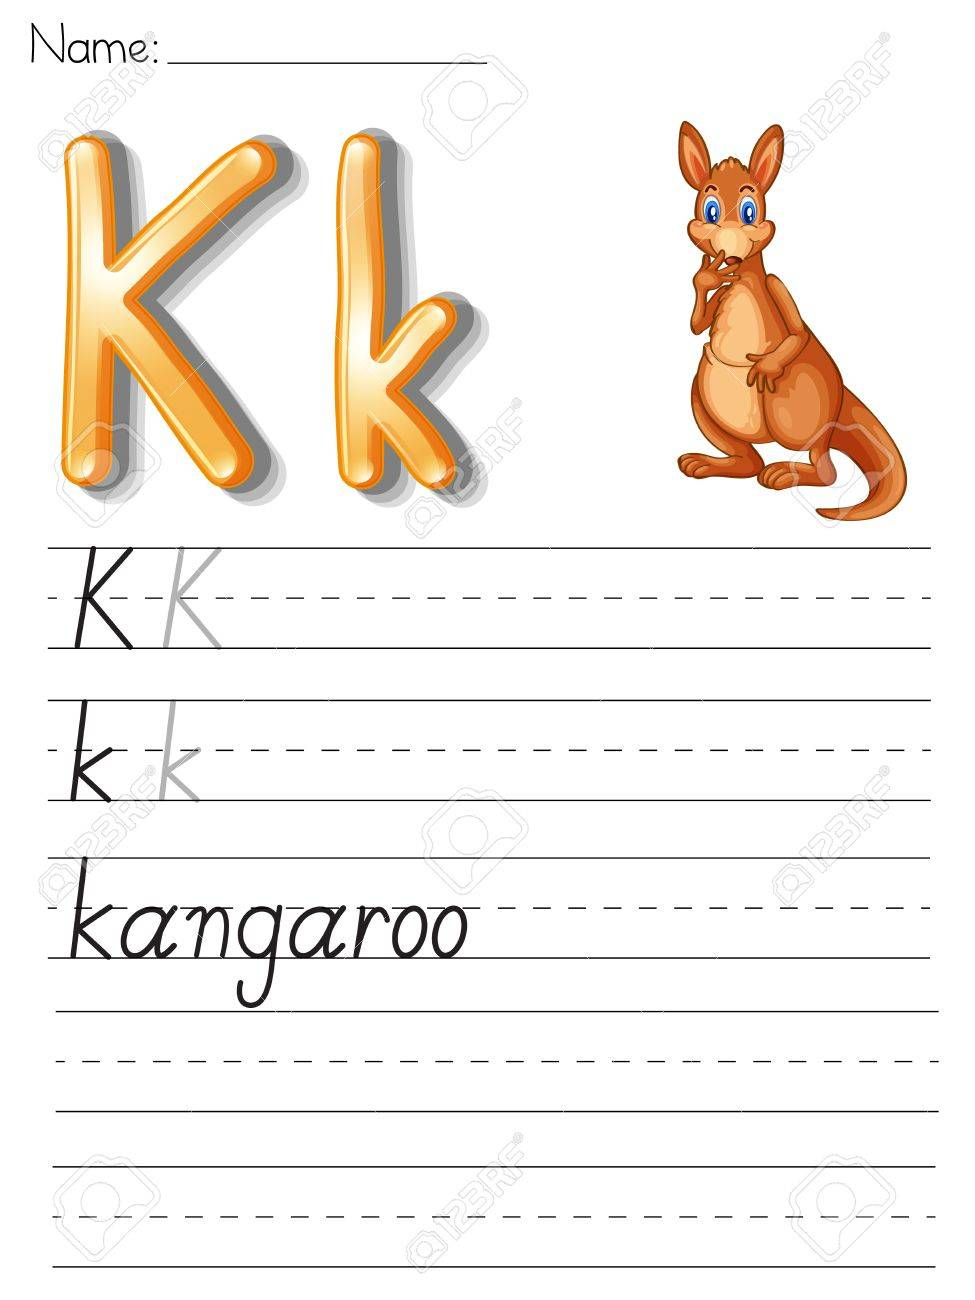 Alphabet Worksheet On White Paper Royalty Free Cliparts, Vectors ...